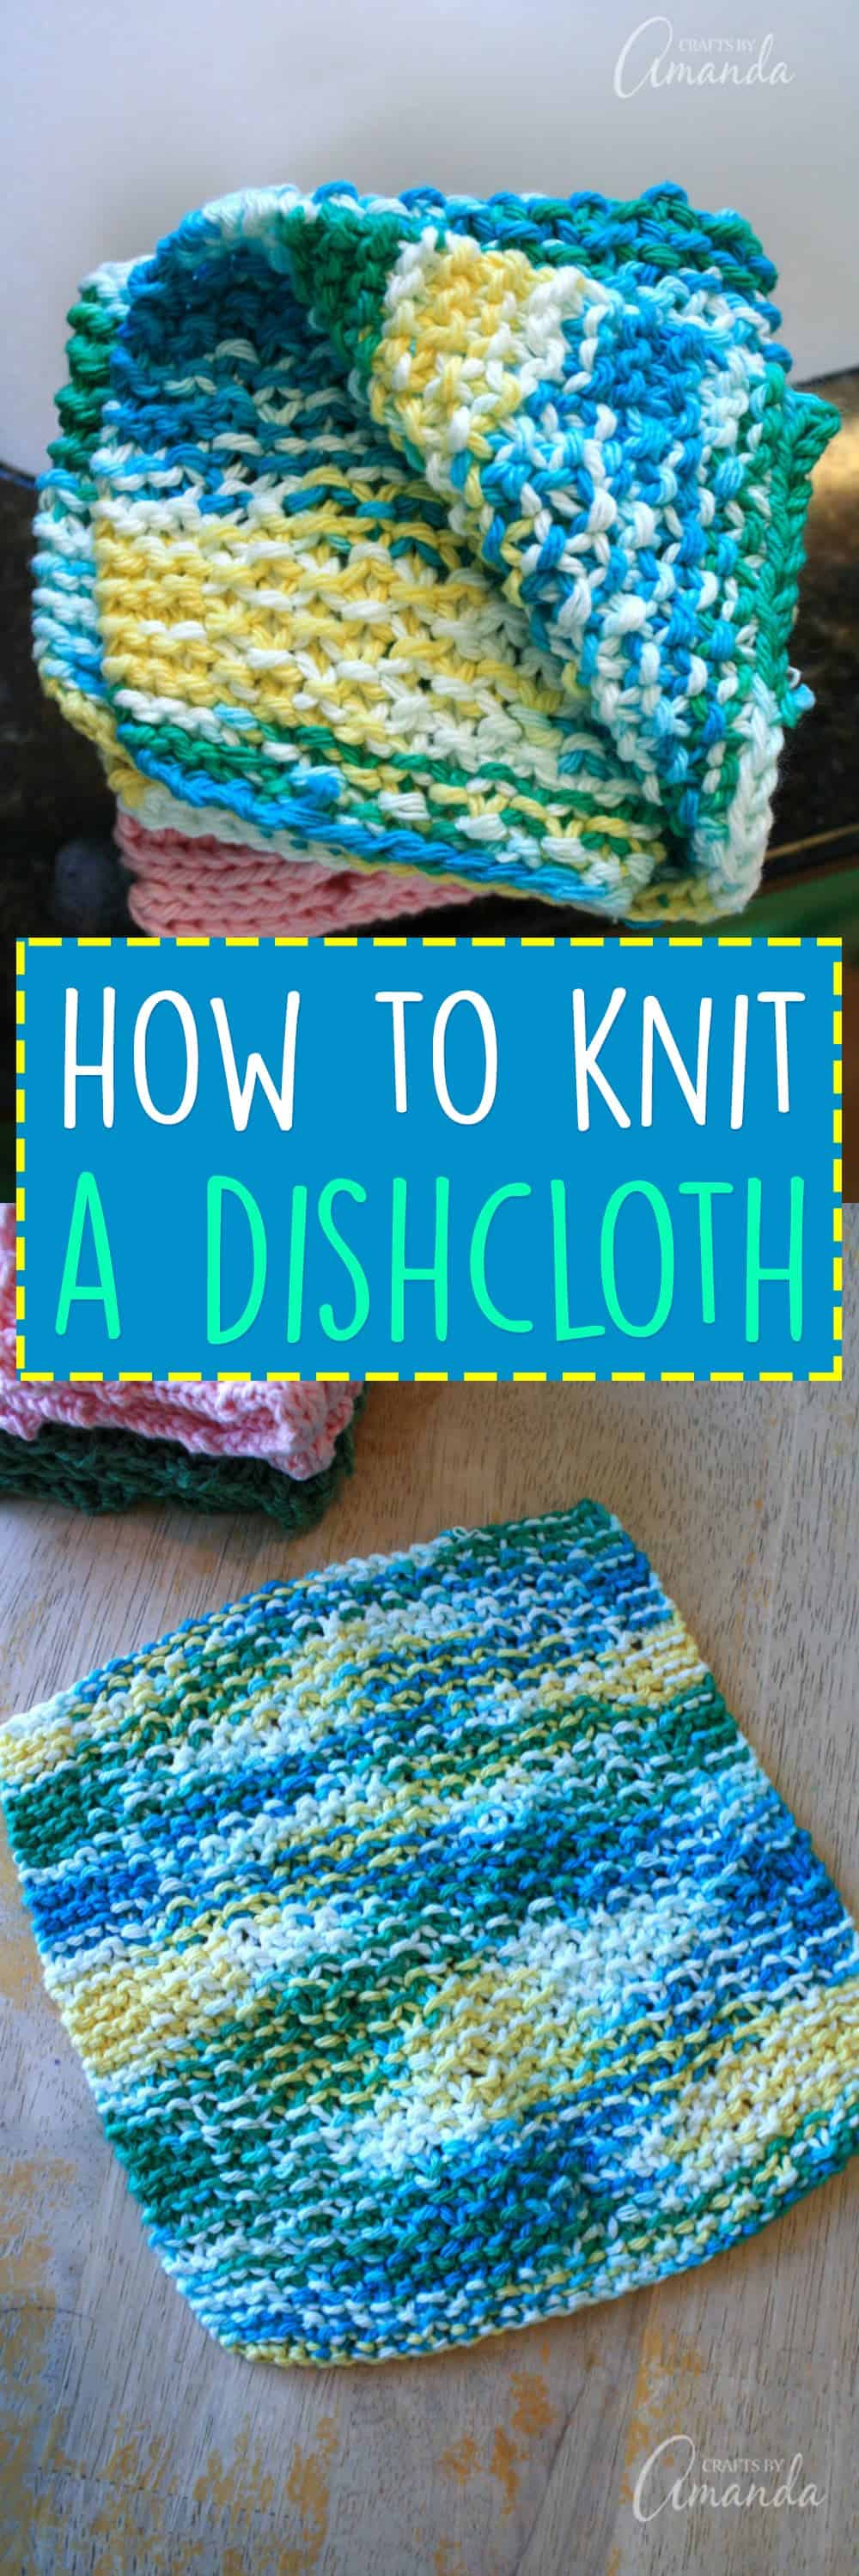 Do you remember being at your grandma's house and she always had at least one knit dishcloth sitting by the sink or on the counter? With this dishcloth knitting pattern you can make your own and knit some extra ones to give as gifts!